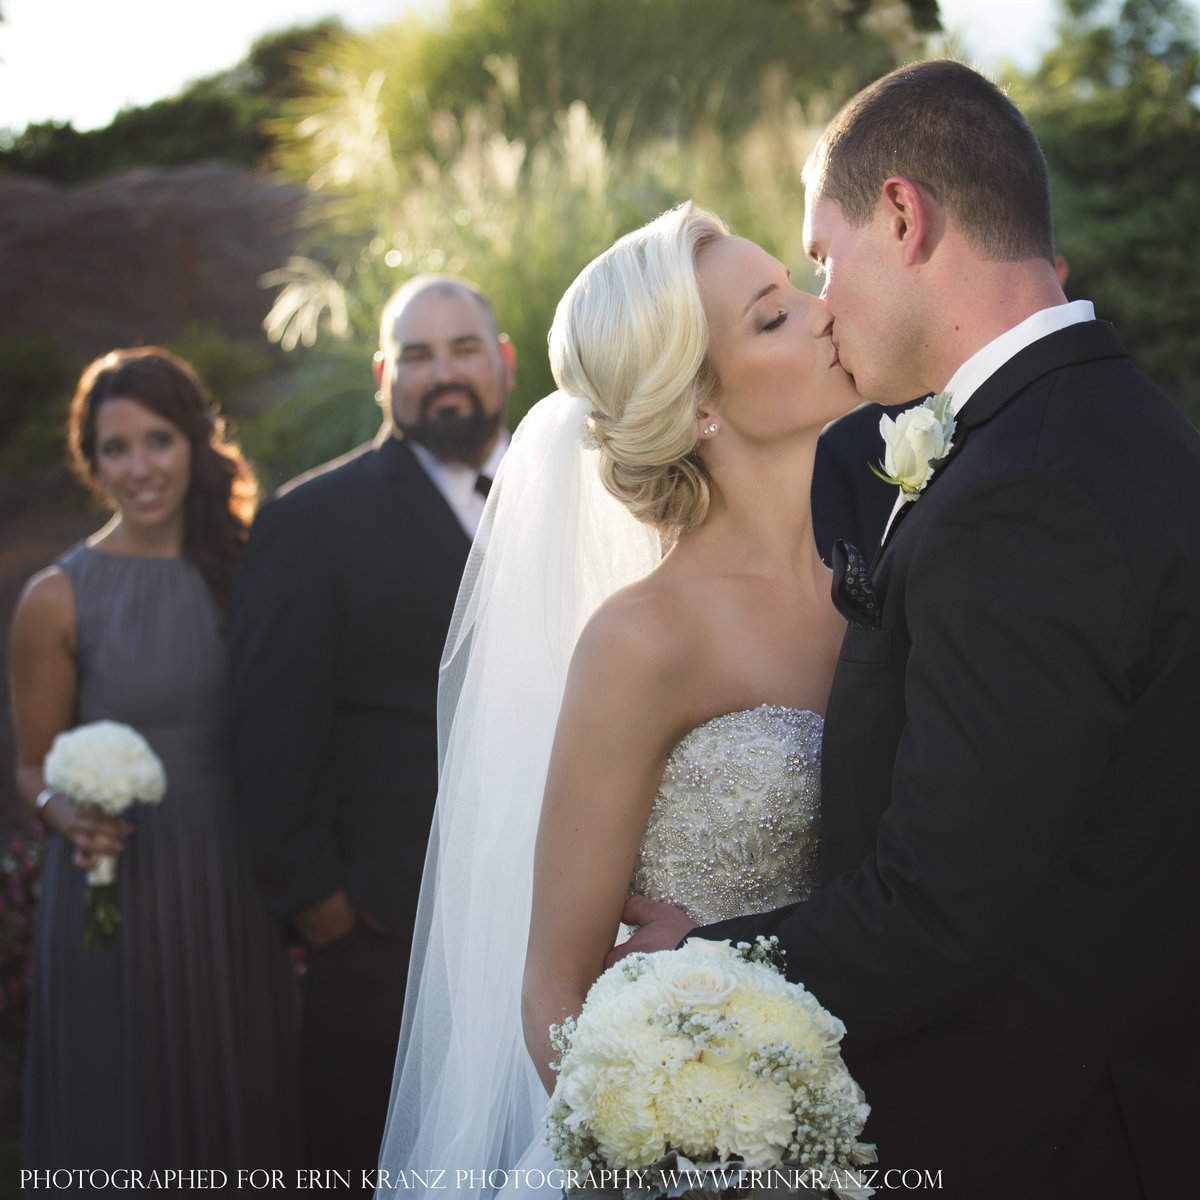 charlotte wedding photographer jamie lucido captures an image of the bride and groom kissing at an outdoor wedding Pine Island Country Club